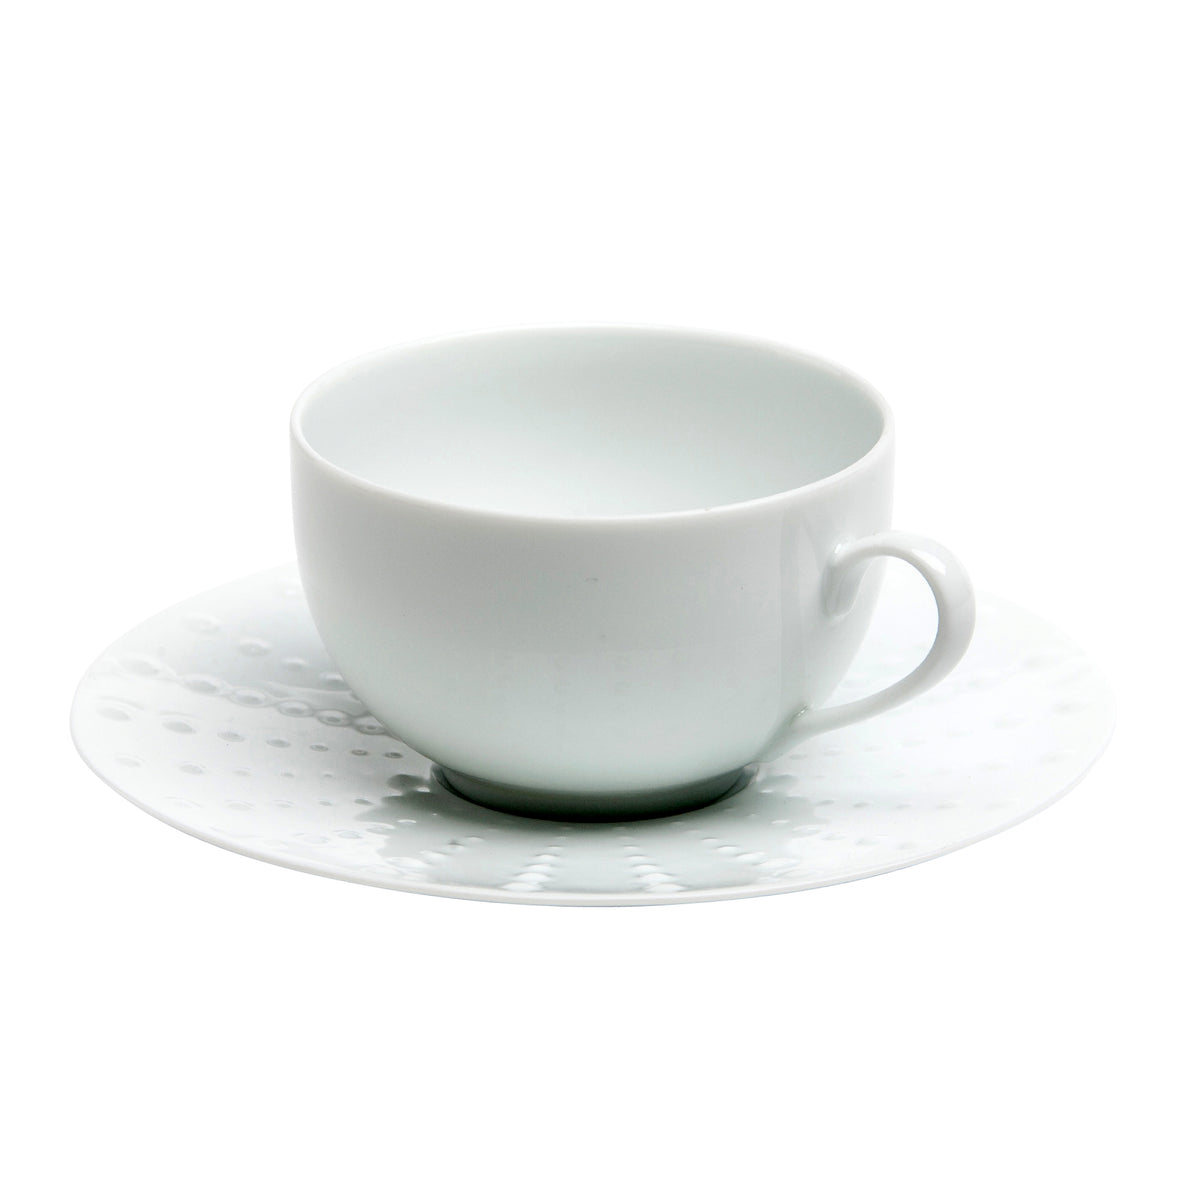 Sania Tea Porcelain Cup and Saucer